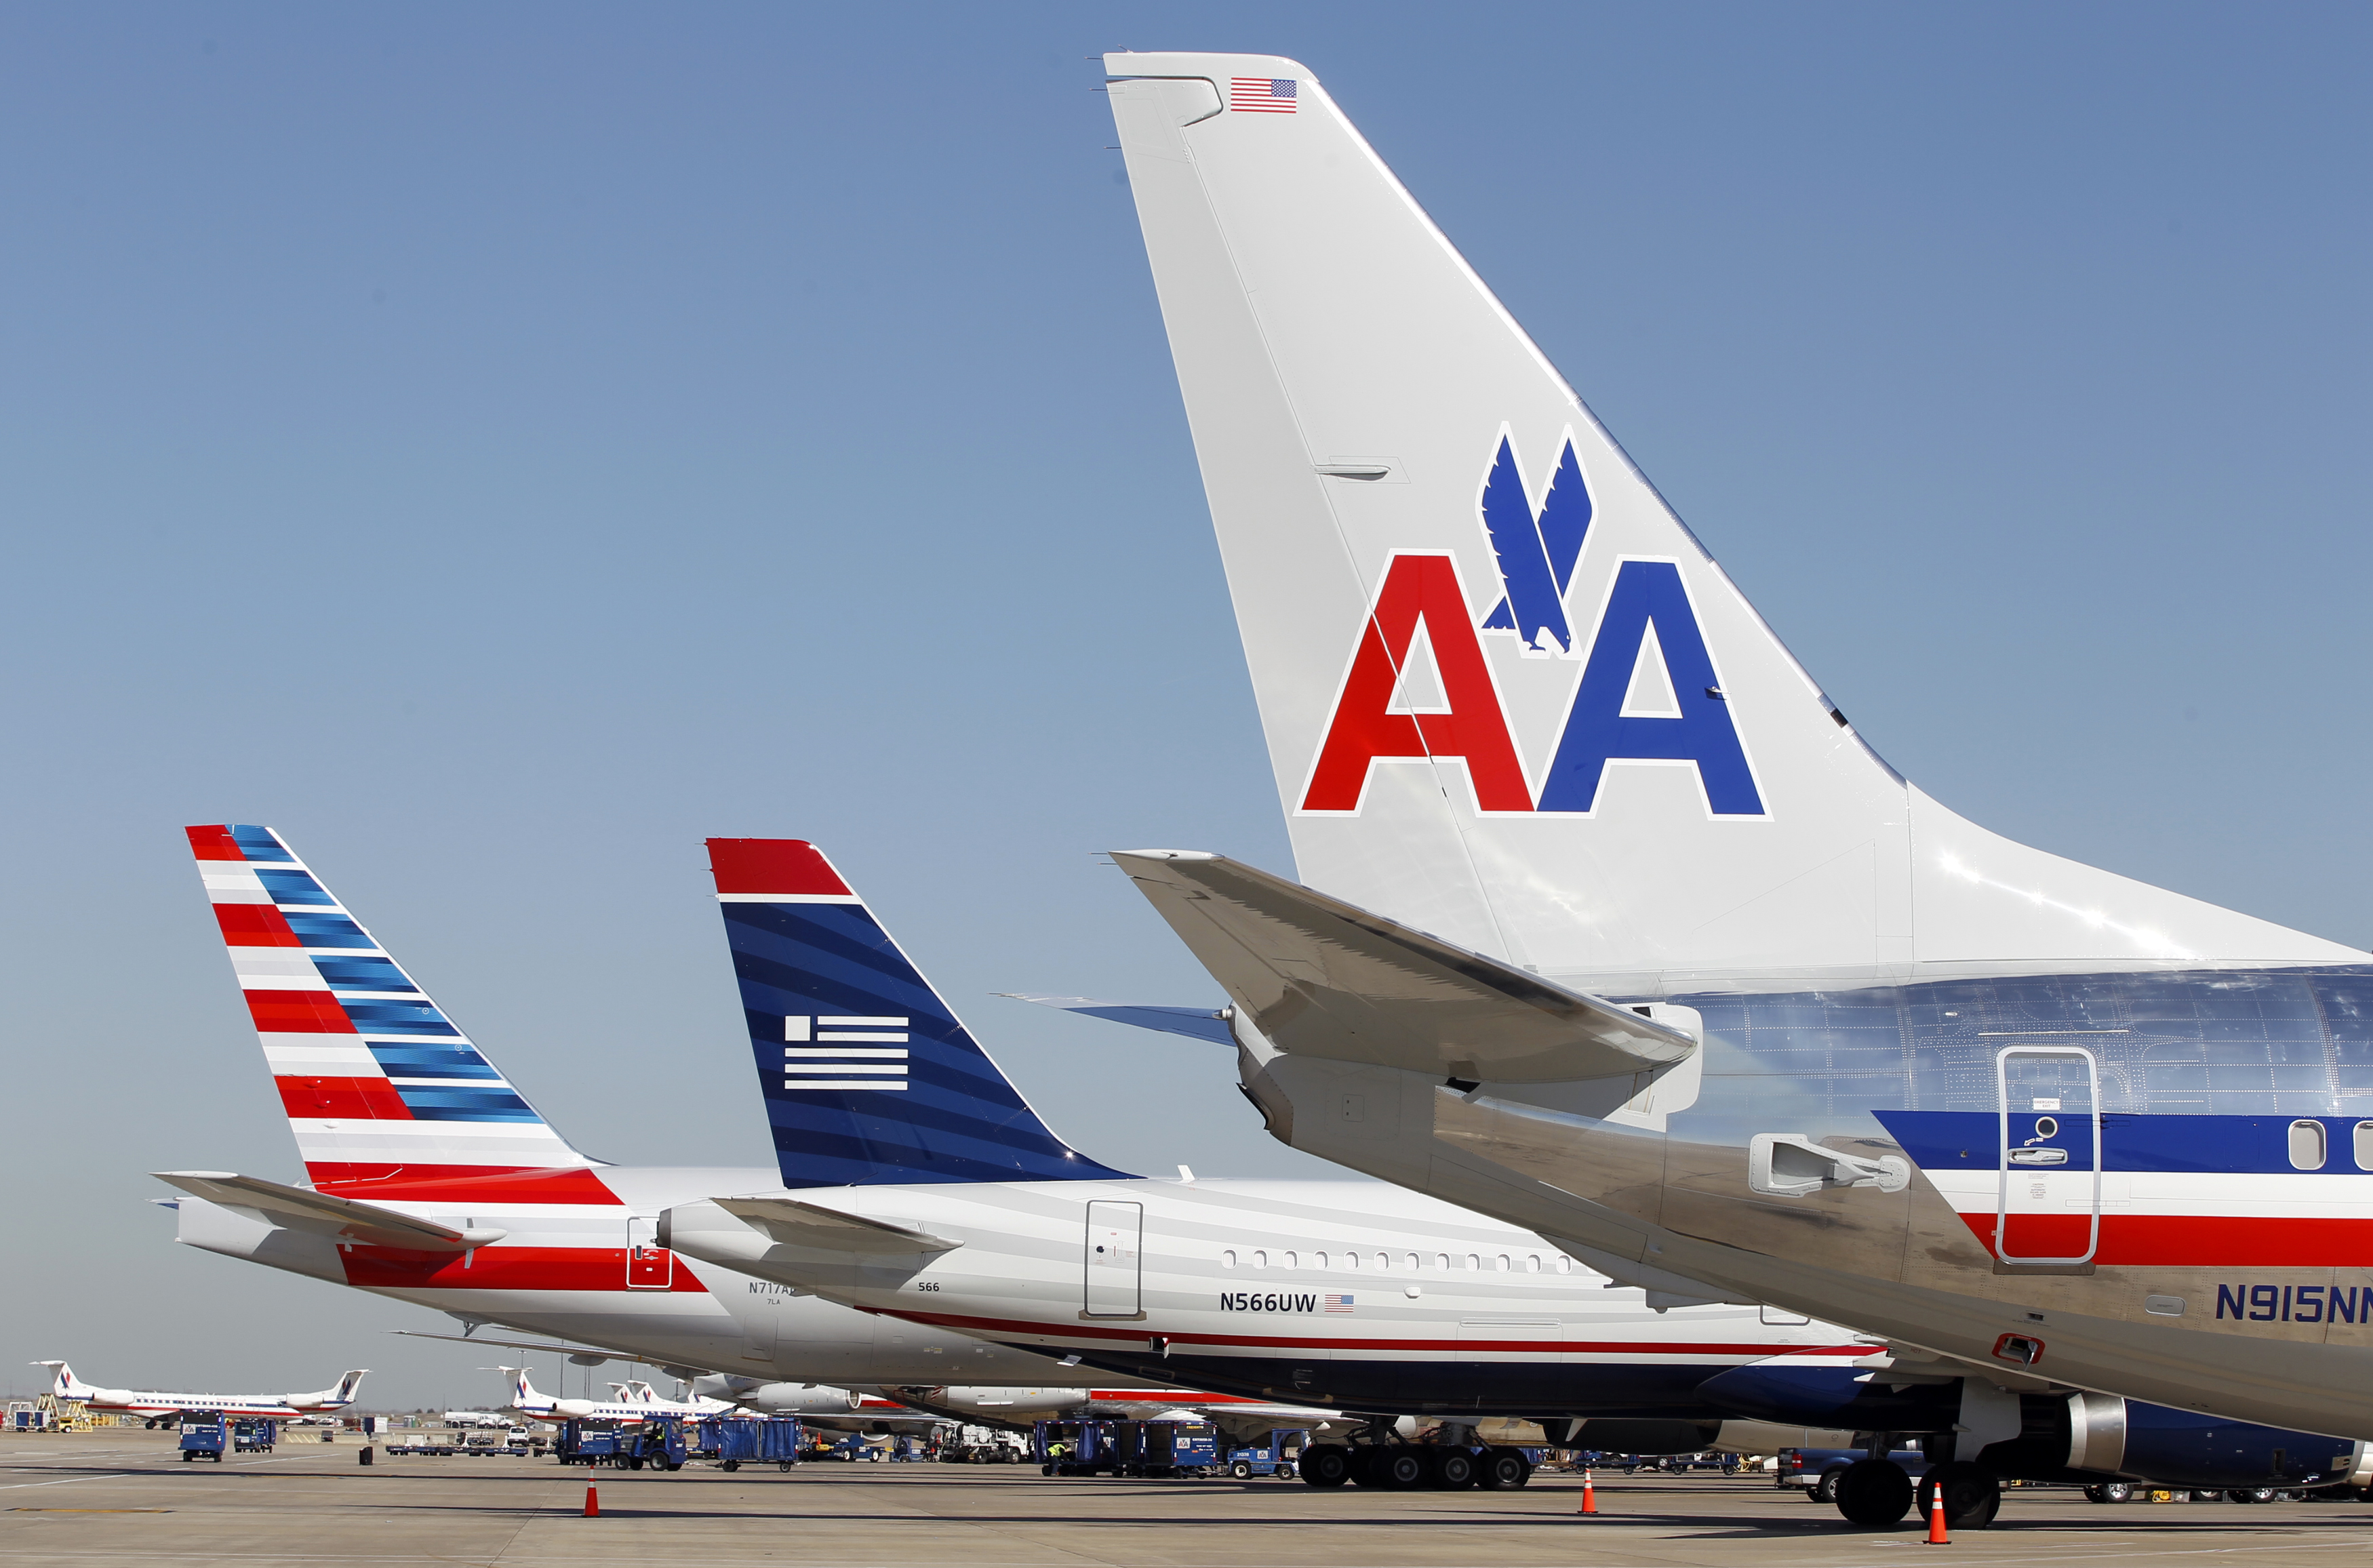 The NAACP issues travel advisory for American Airlines, warning ...